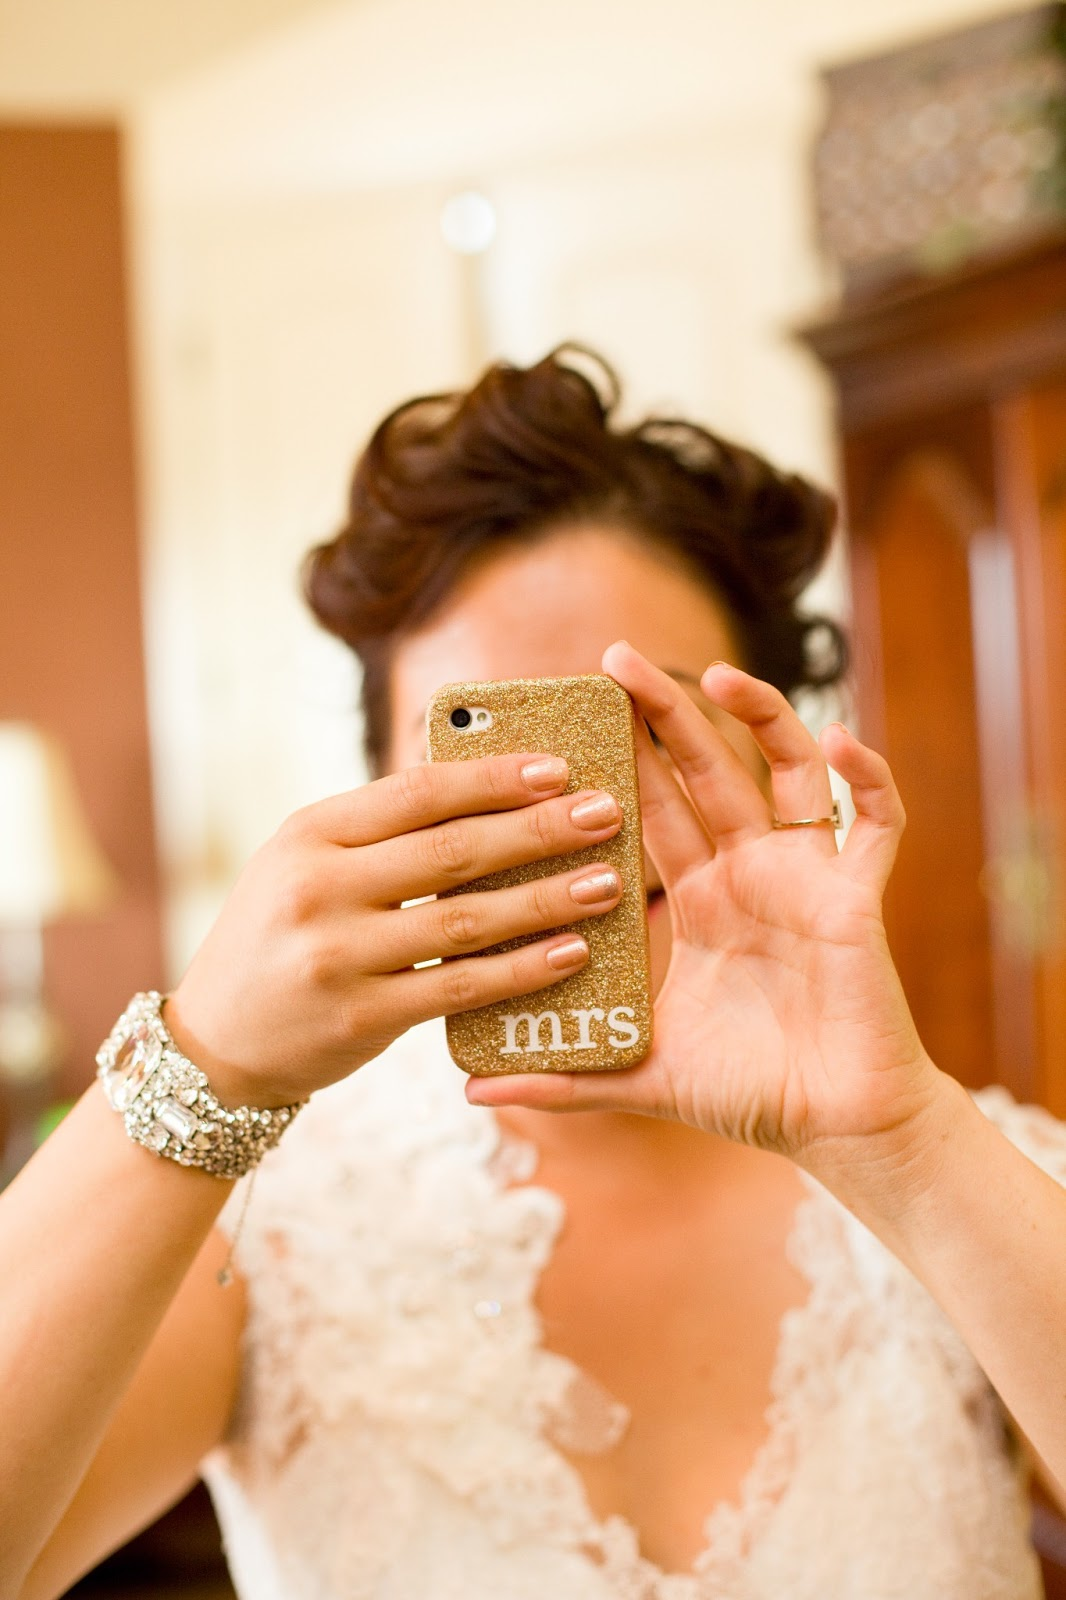 SF Bay Area Fashion & Lifestyle Blog - The Mrs. Mani - Wedding Day Nails